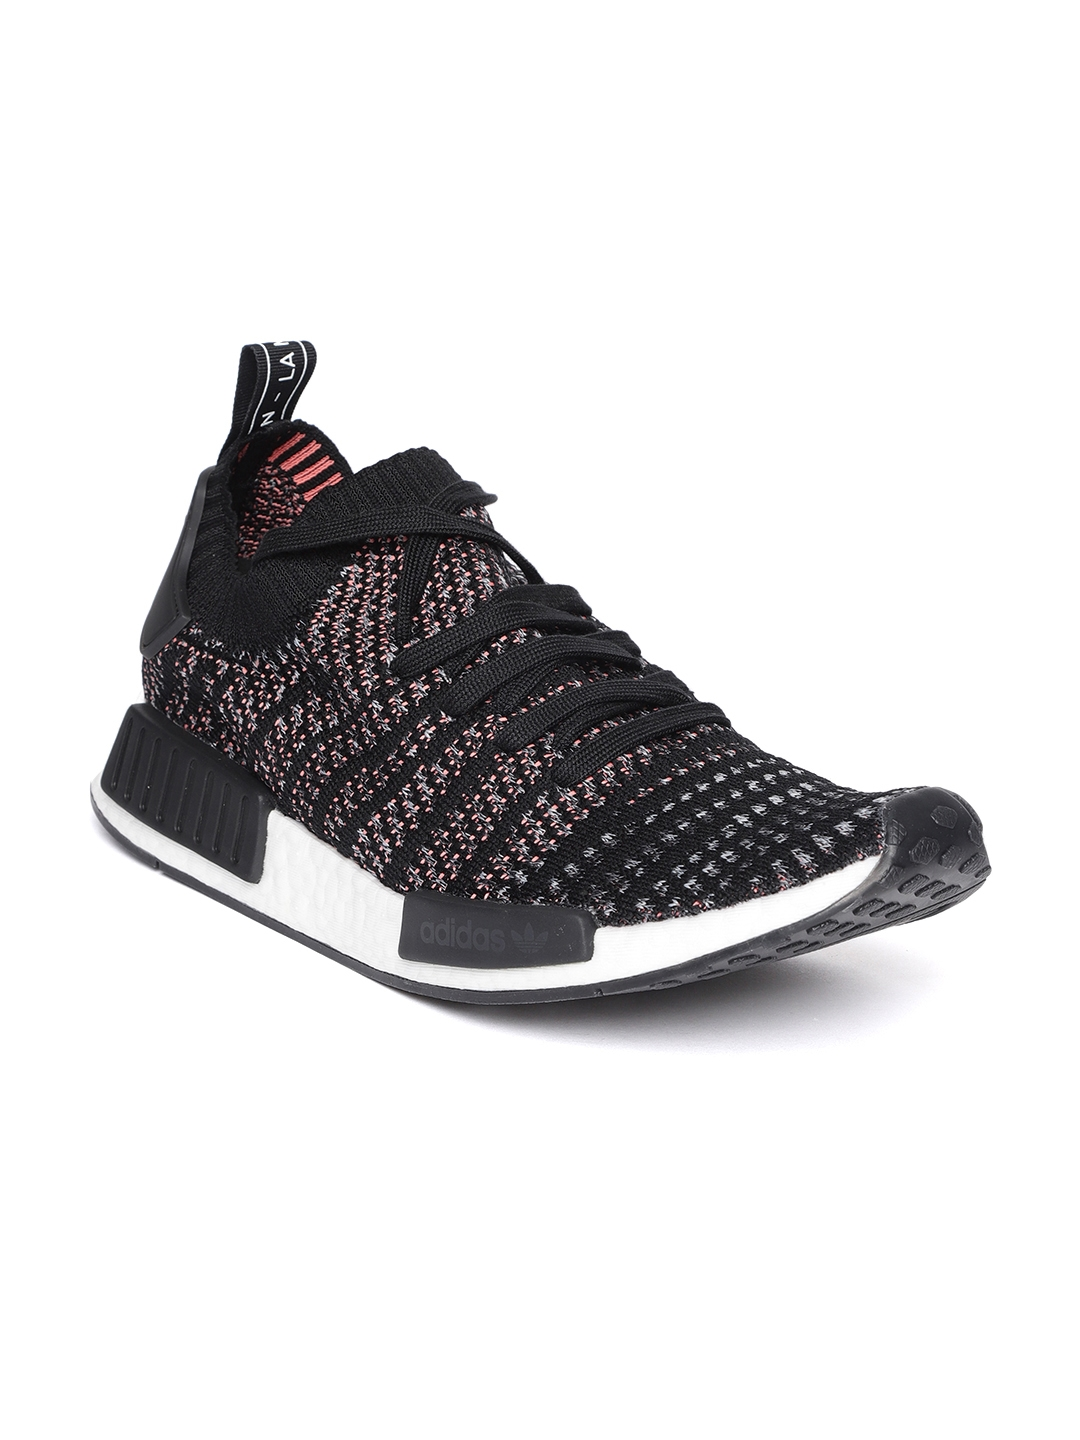 0ad6c6097 Buy ADIDAS Originals Men Black NMD R1 STLT Primeknit Sneakers ...